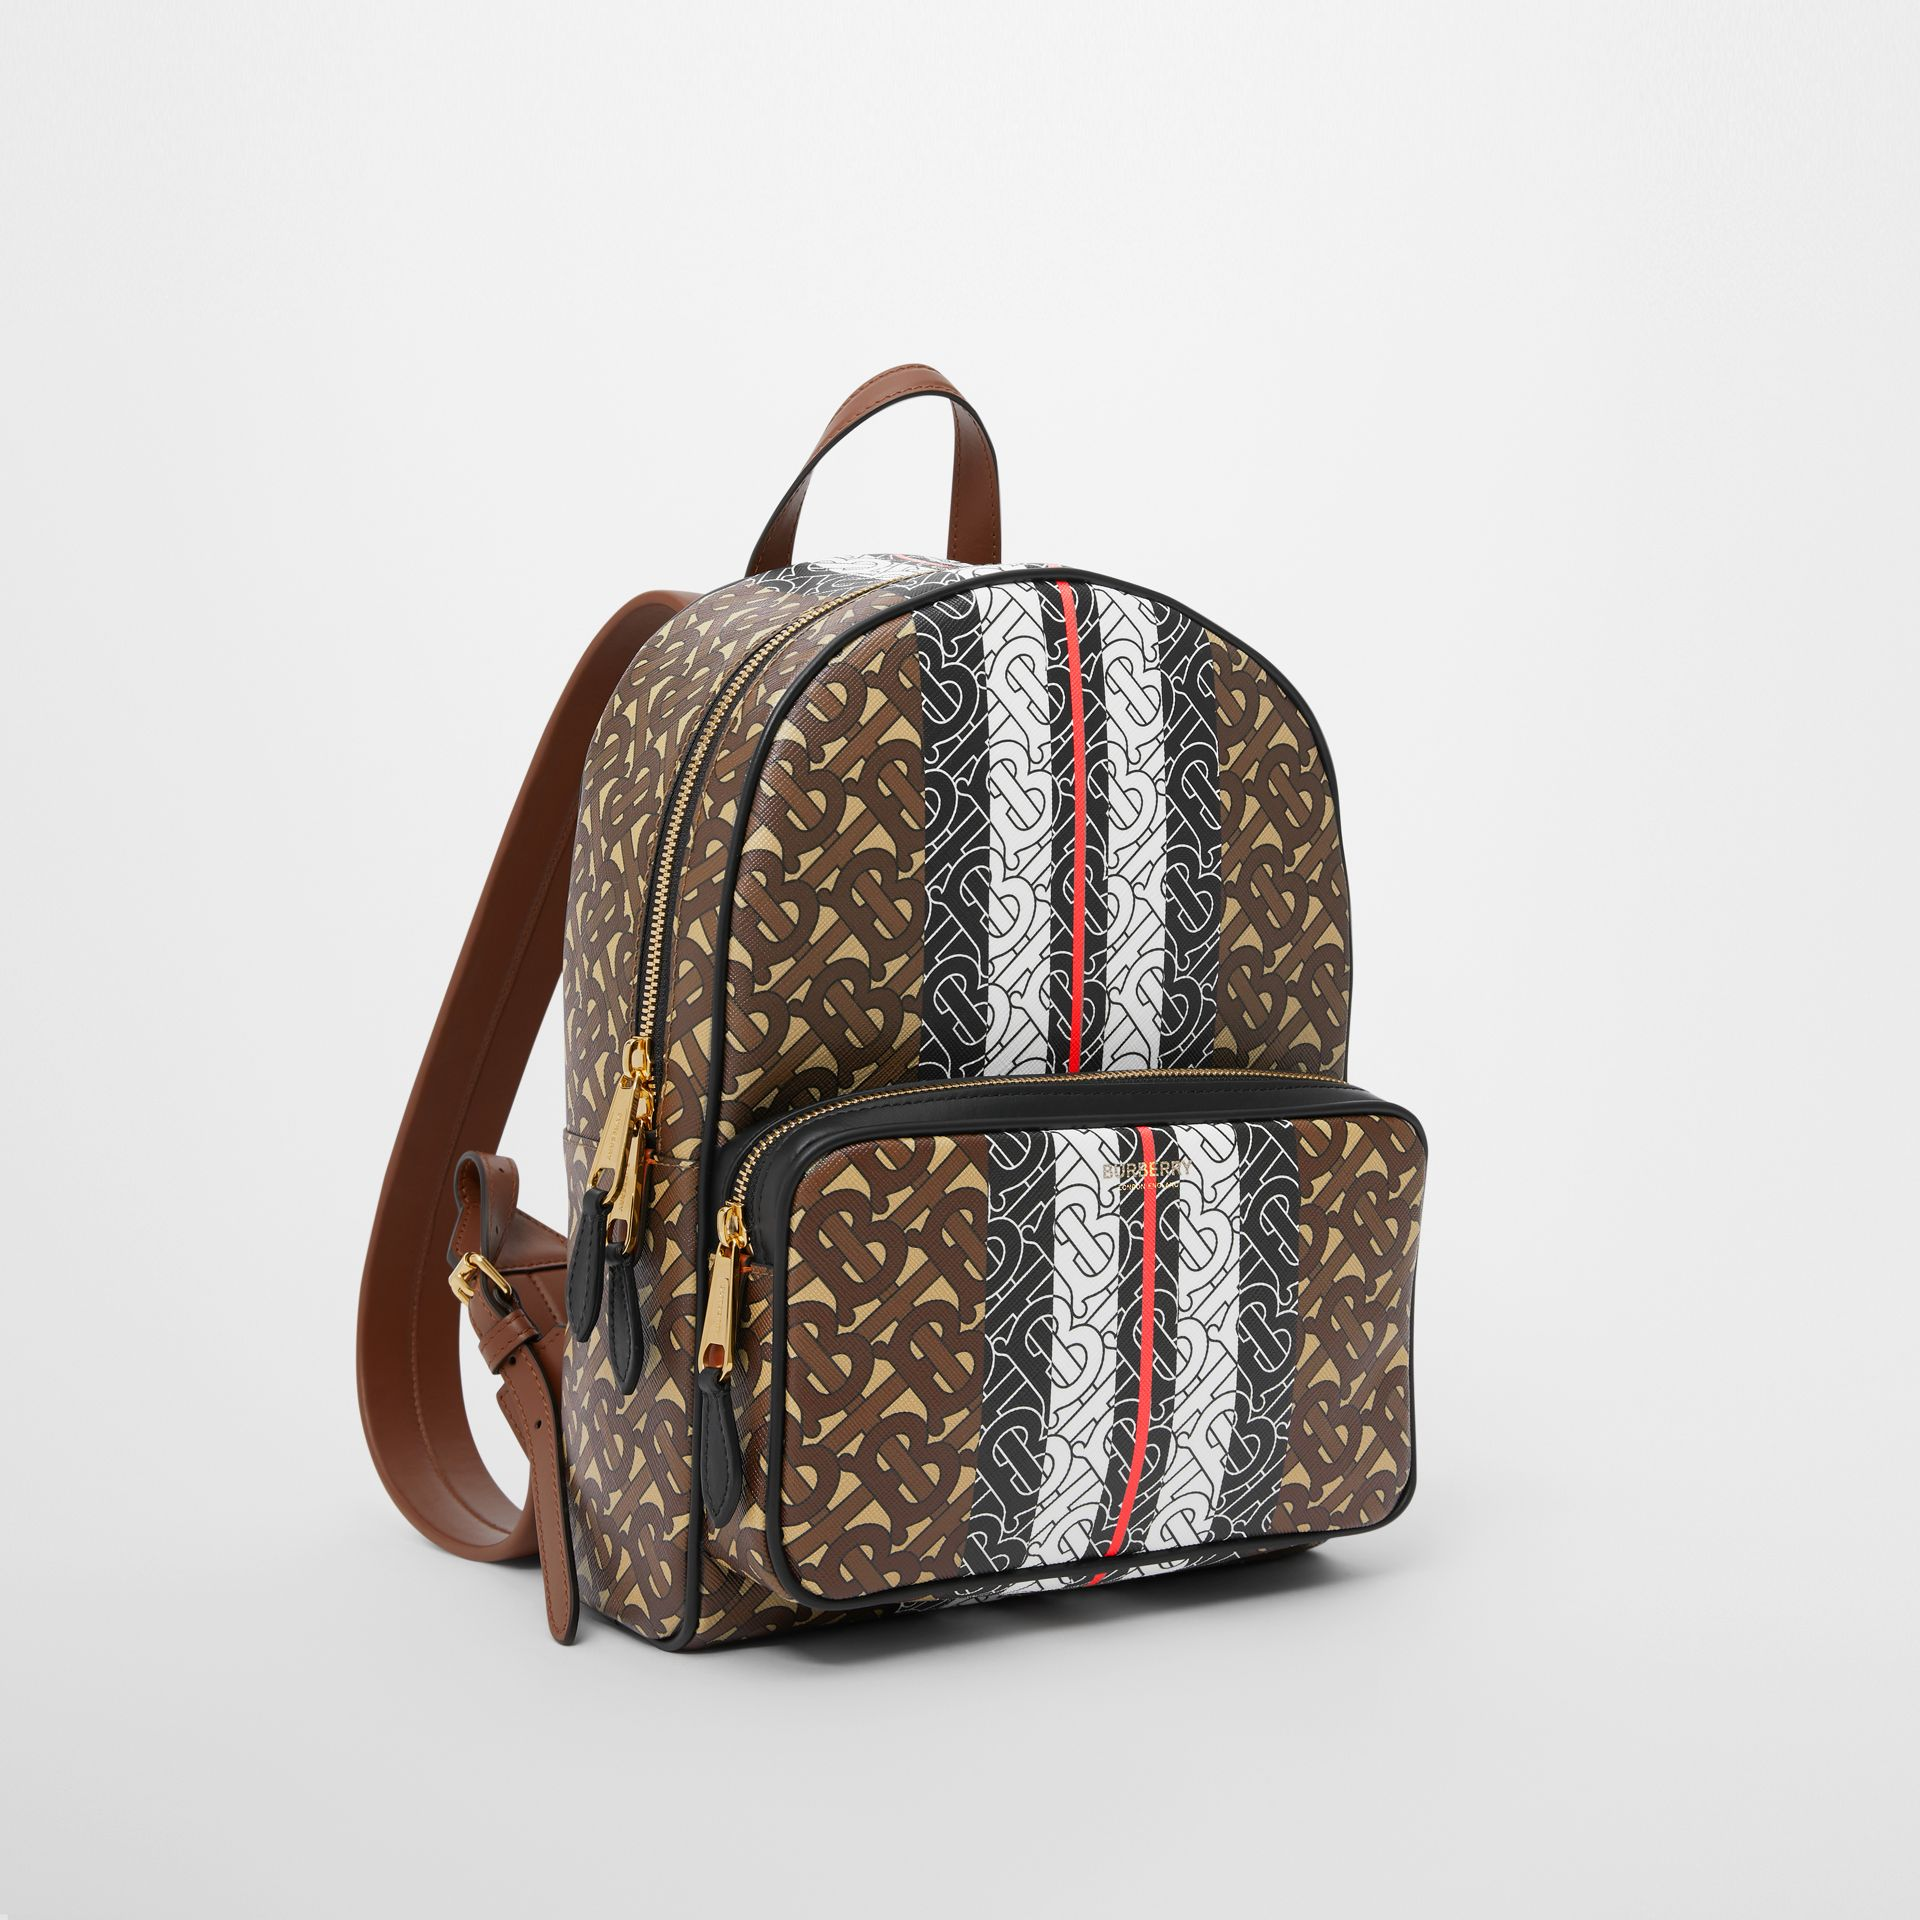 Monogram Stripe Print E-canvas Backpack in Bridle Brown - Women | Burberry - gallery image 4